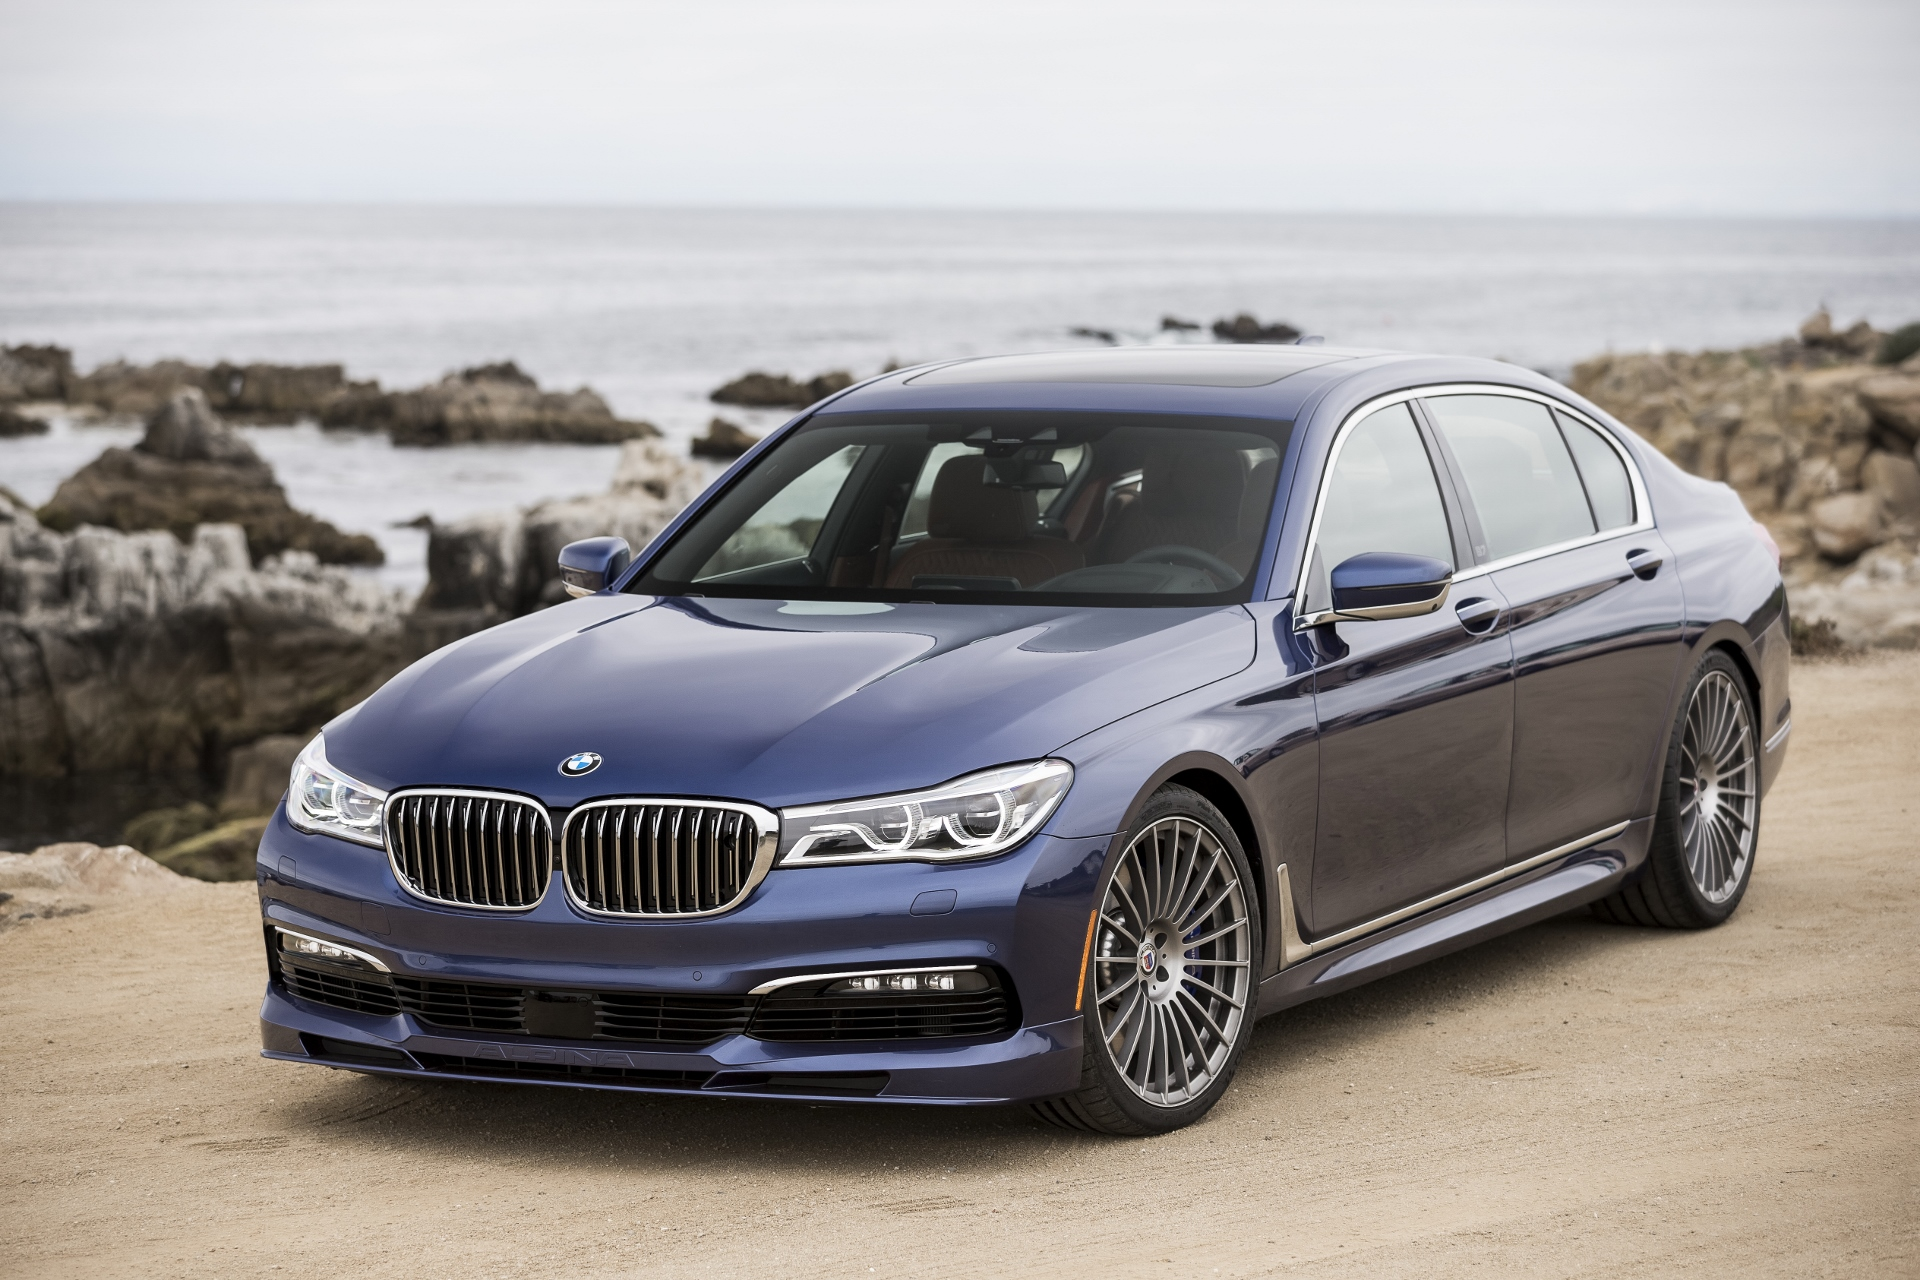 2017 Bmw Alpina B7 First Drive Review A Better Bmw